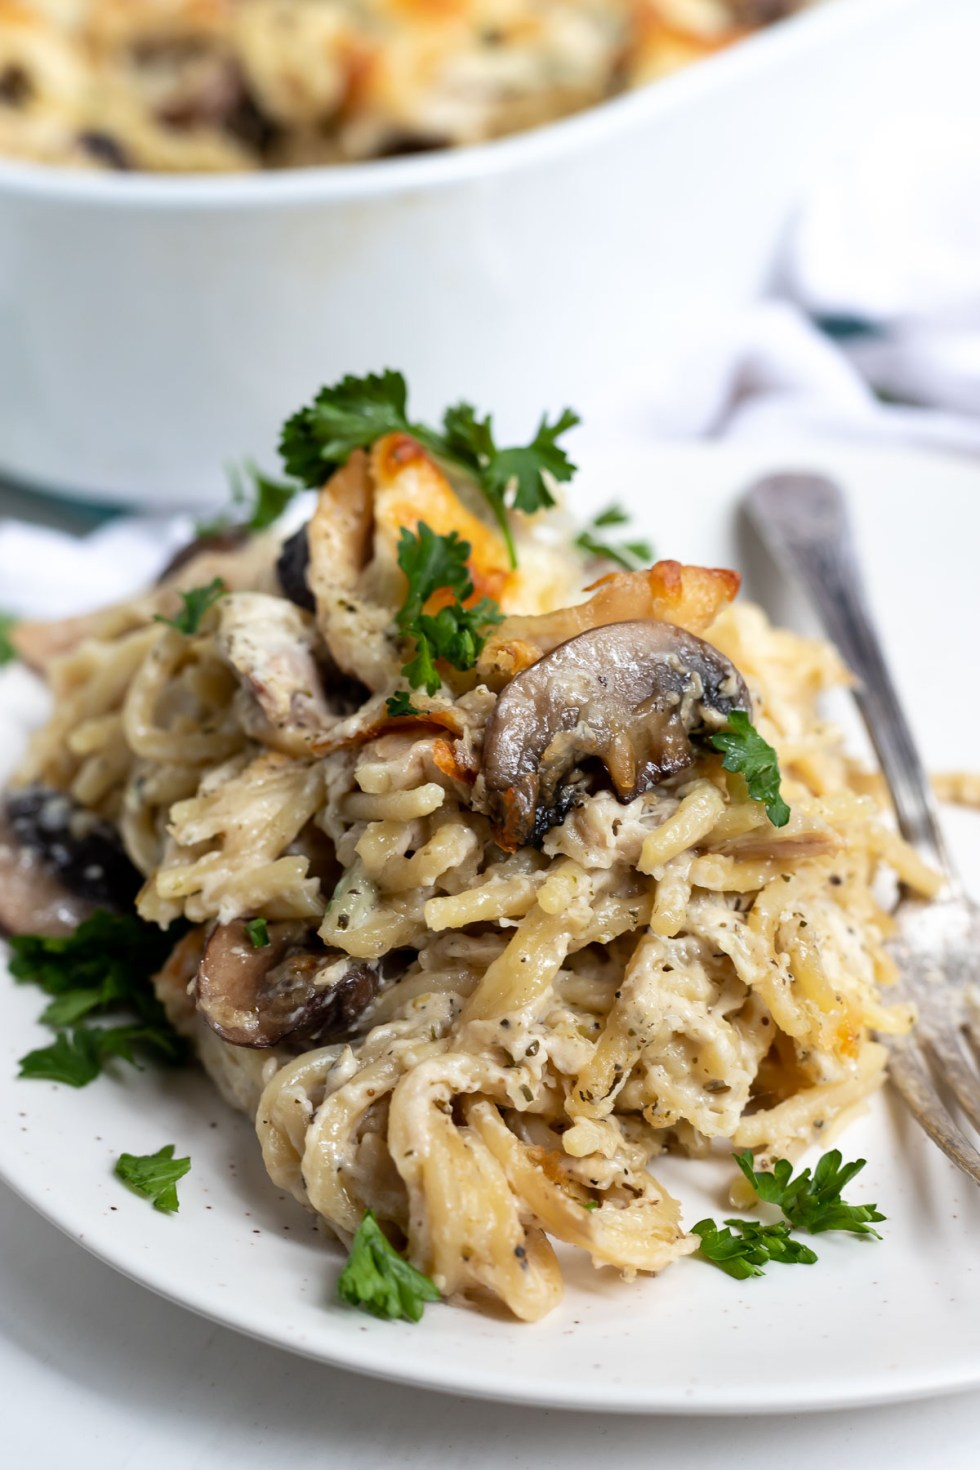 Chicken Tetrazzini Casserole served on a white plate and topped with fresh green parsley